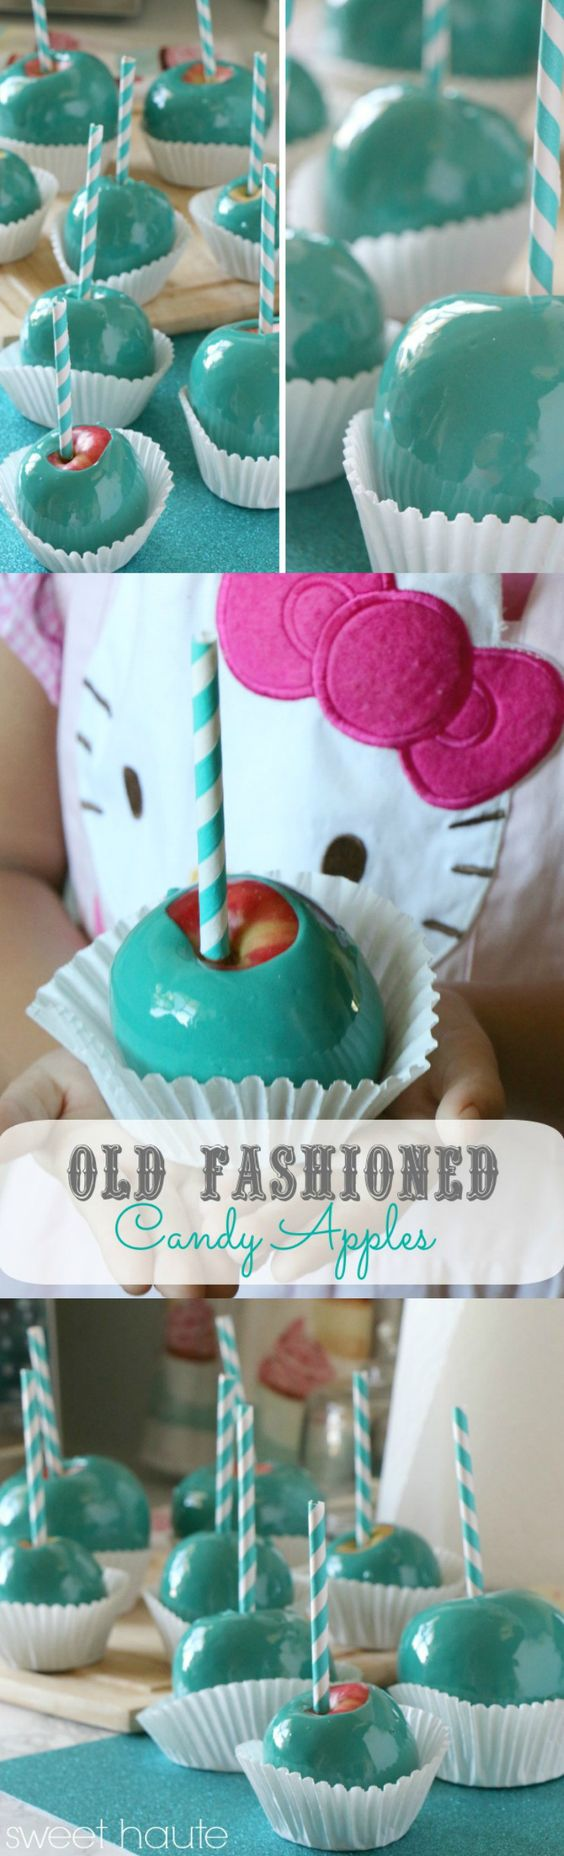 candy apples recipes party recipes apple recipes apples favors candy